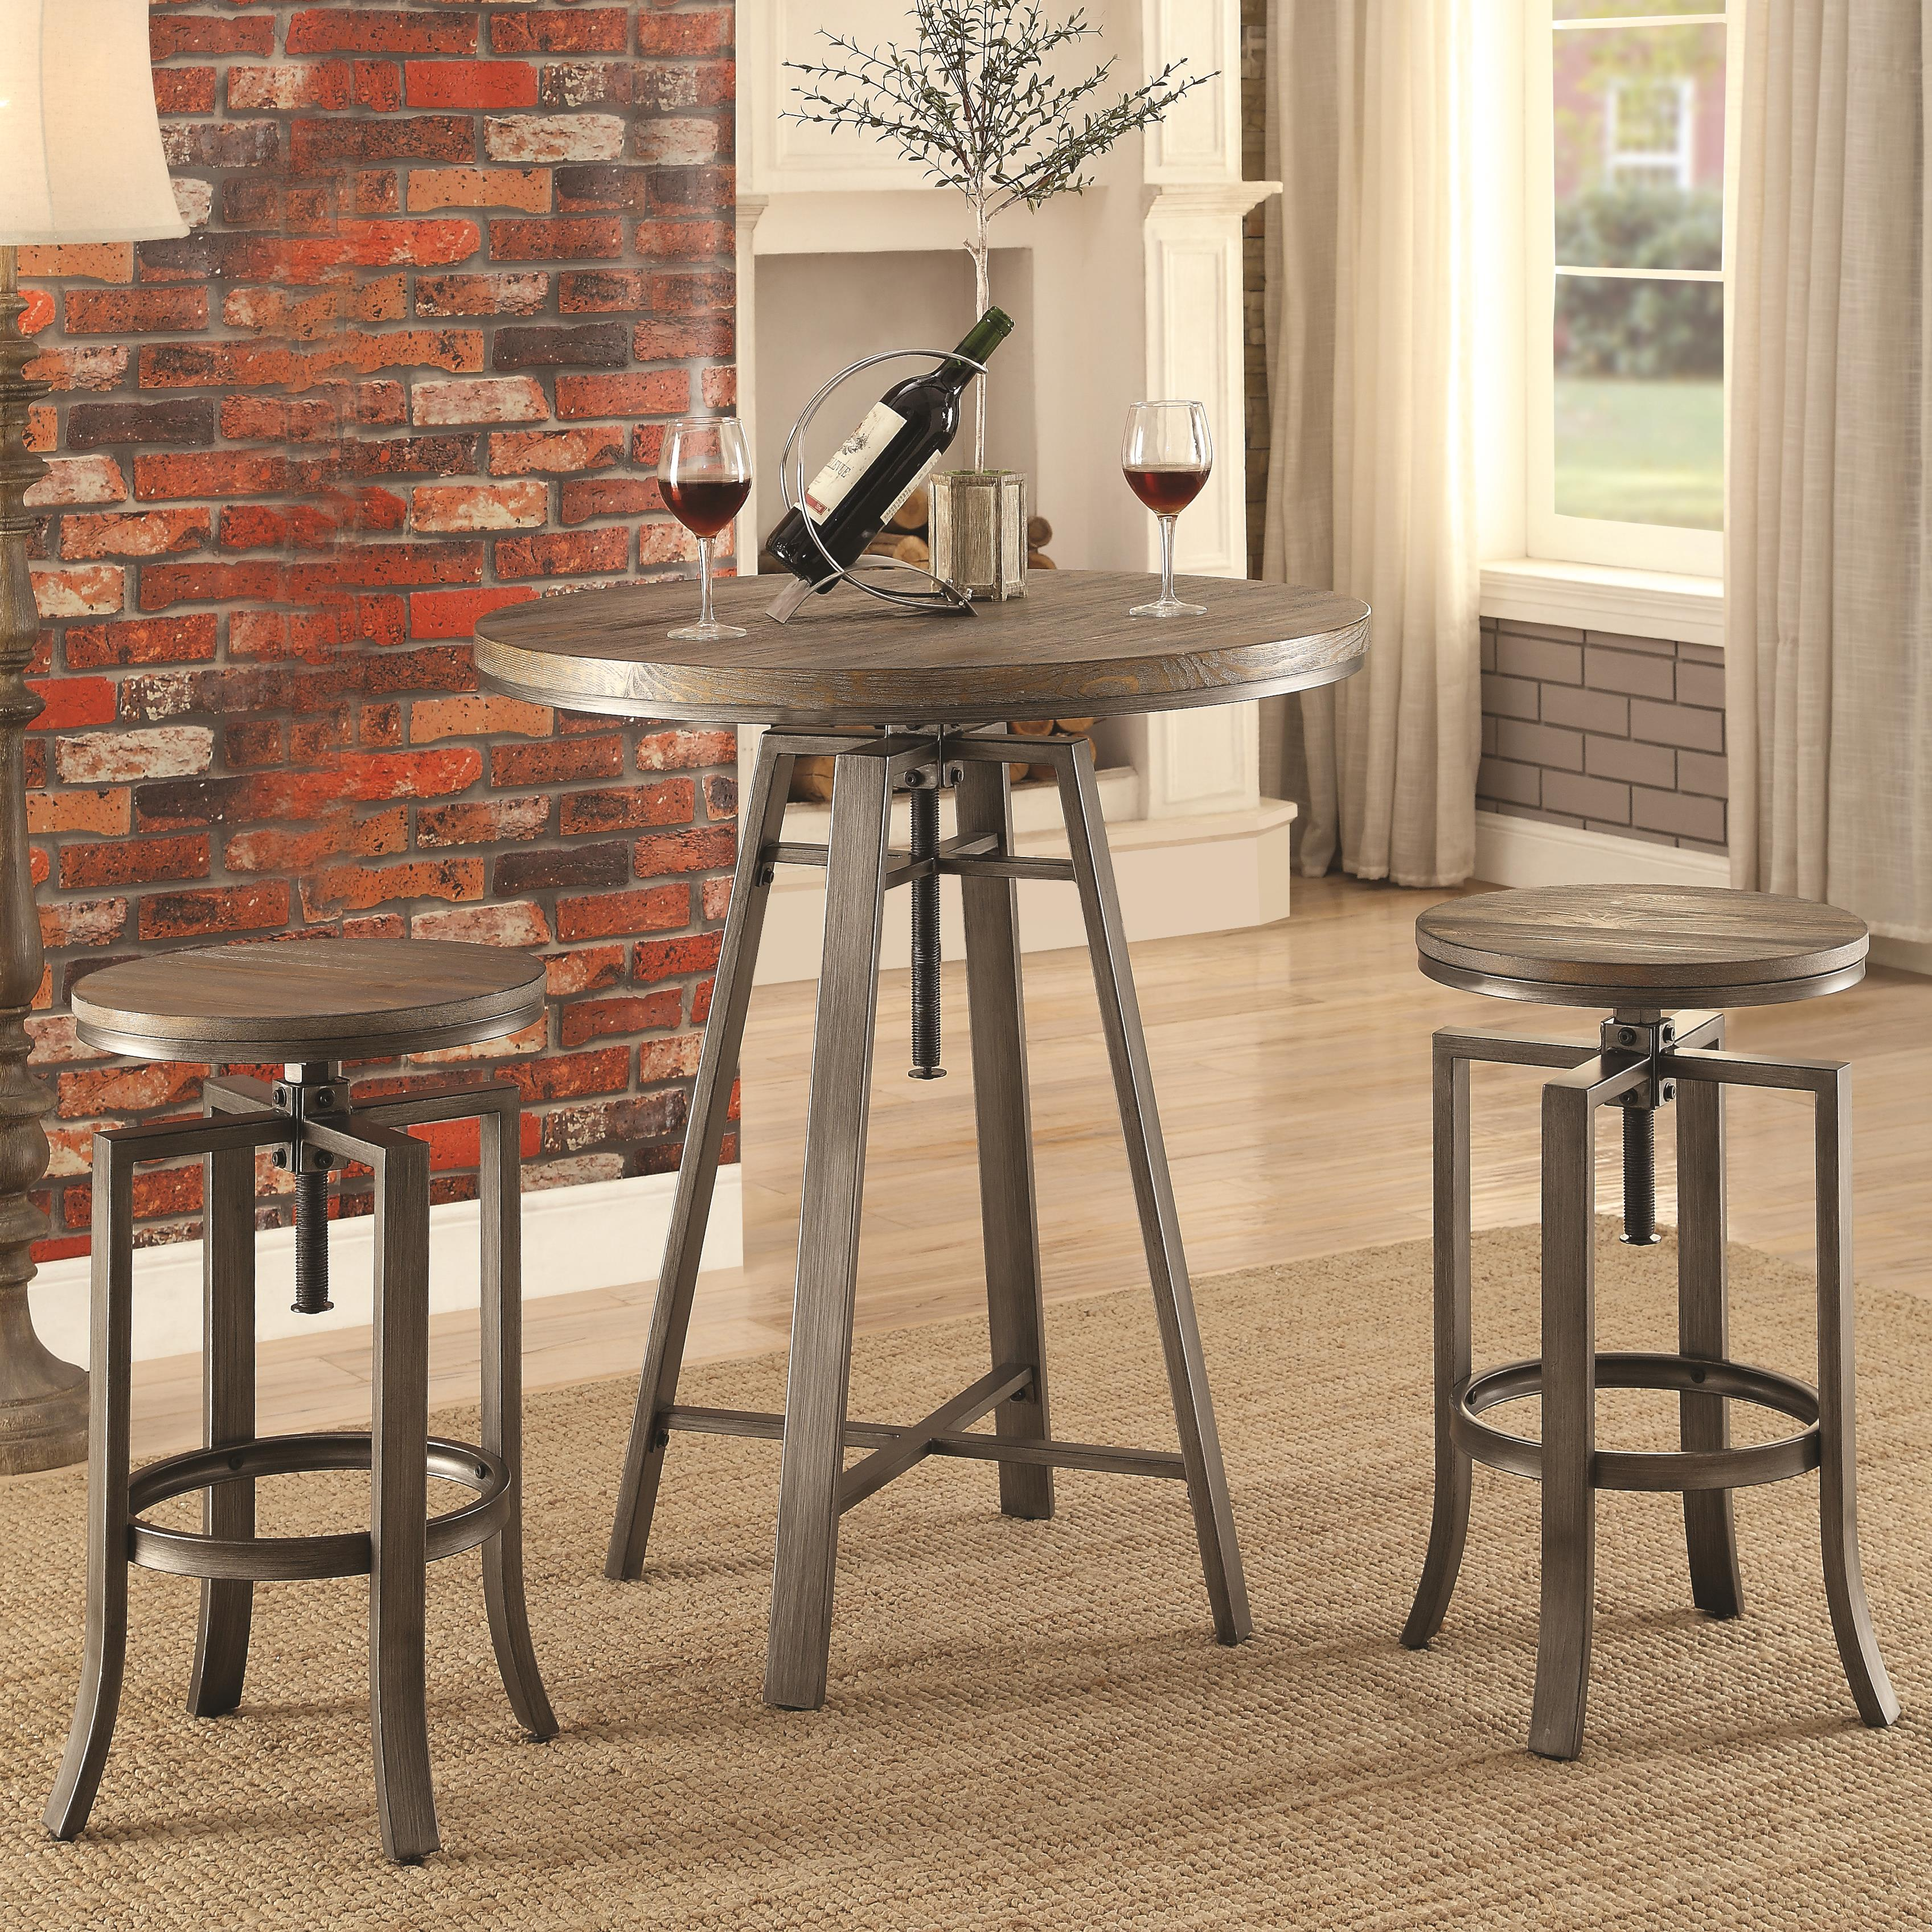 10181 3 Pc Adjustable Pub Table Set by Coaster at Prime Brothers Furniture